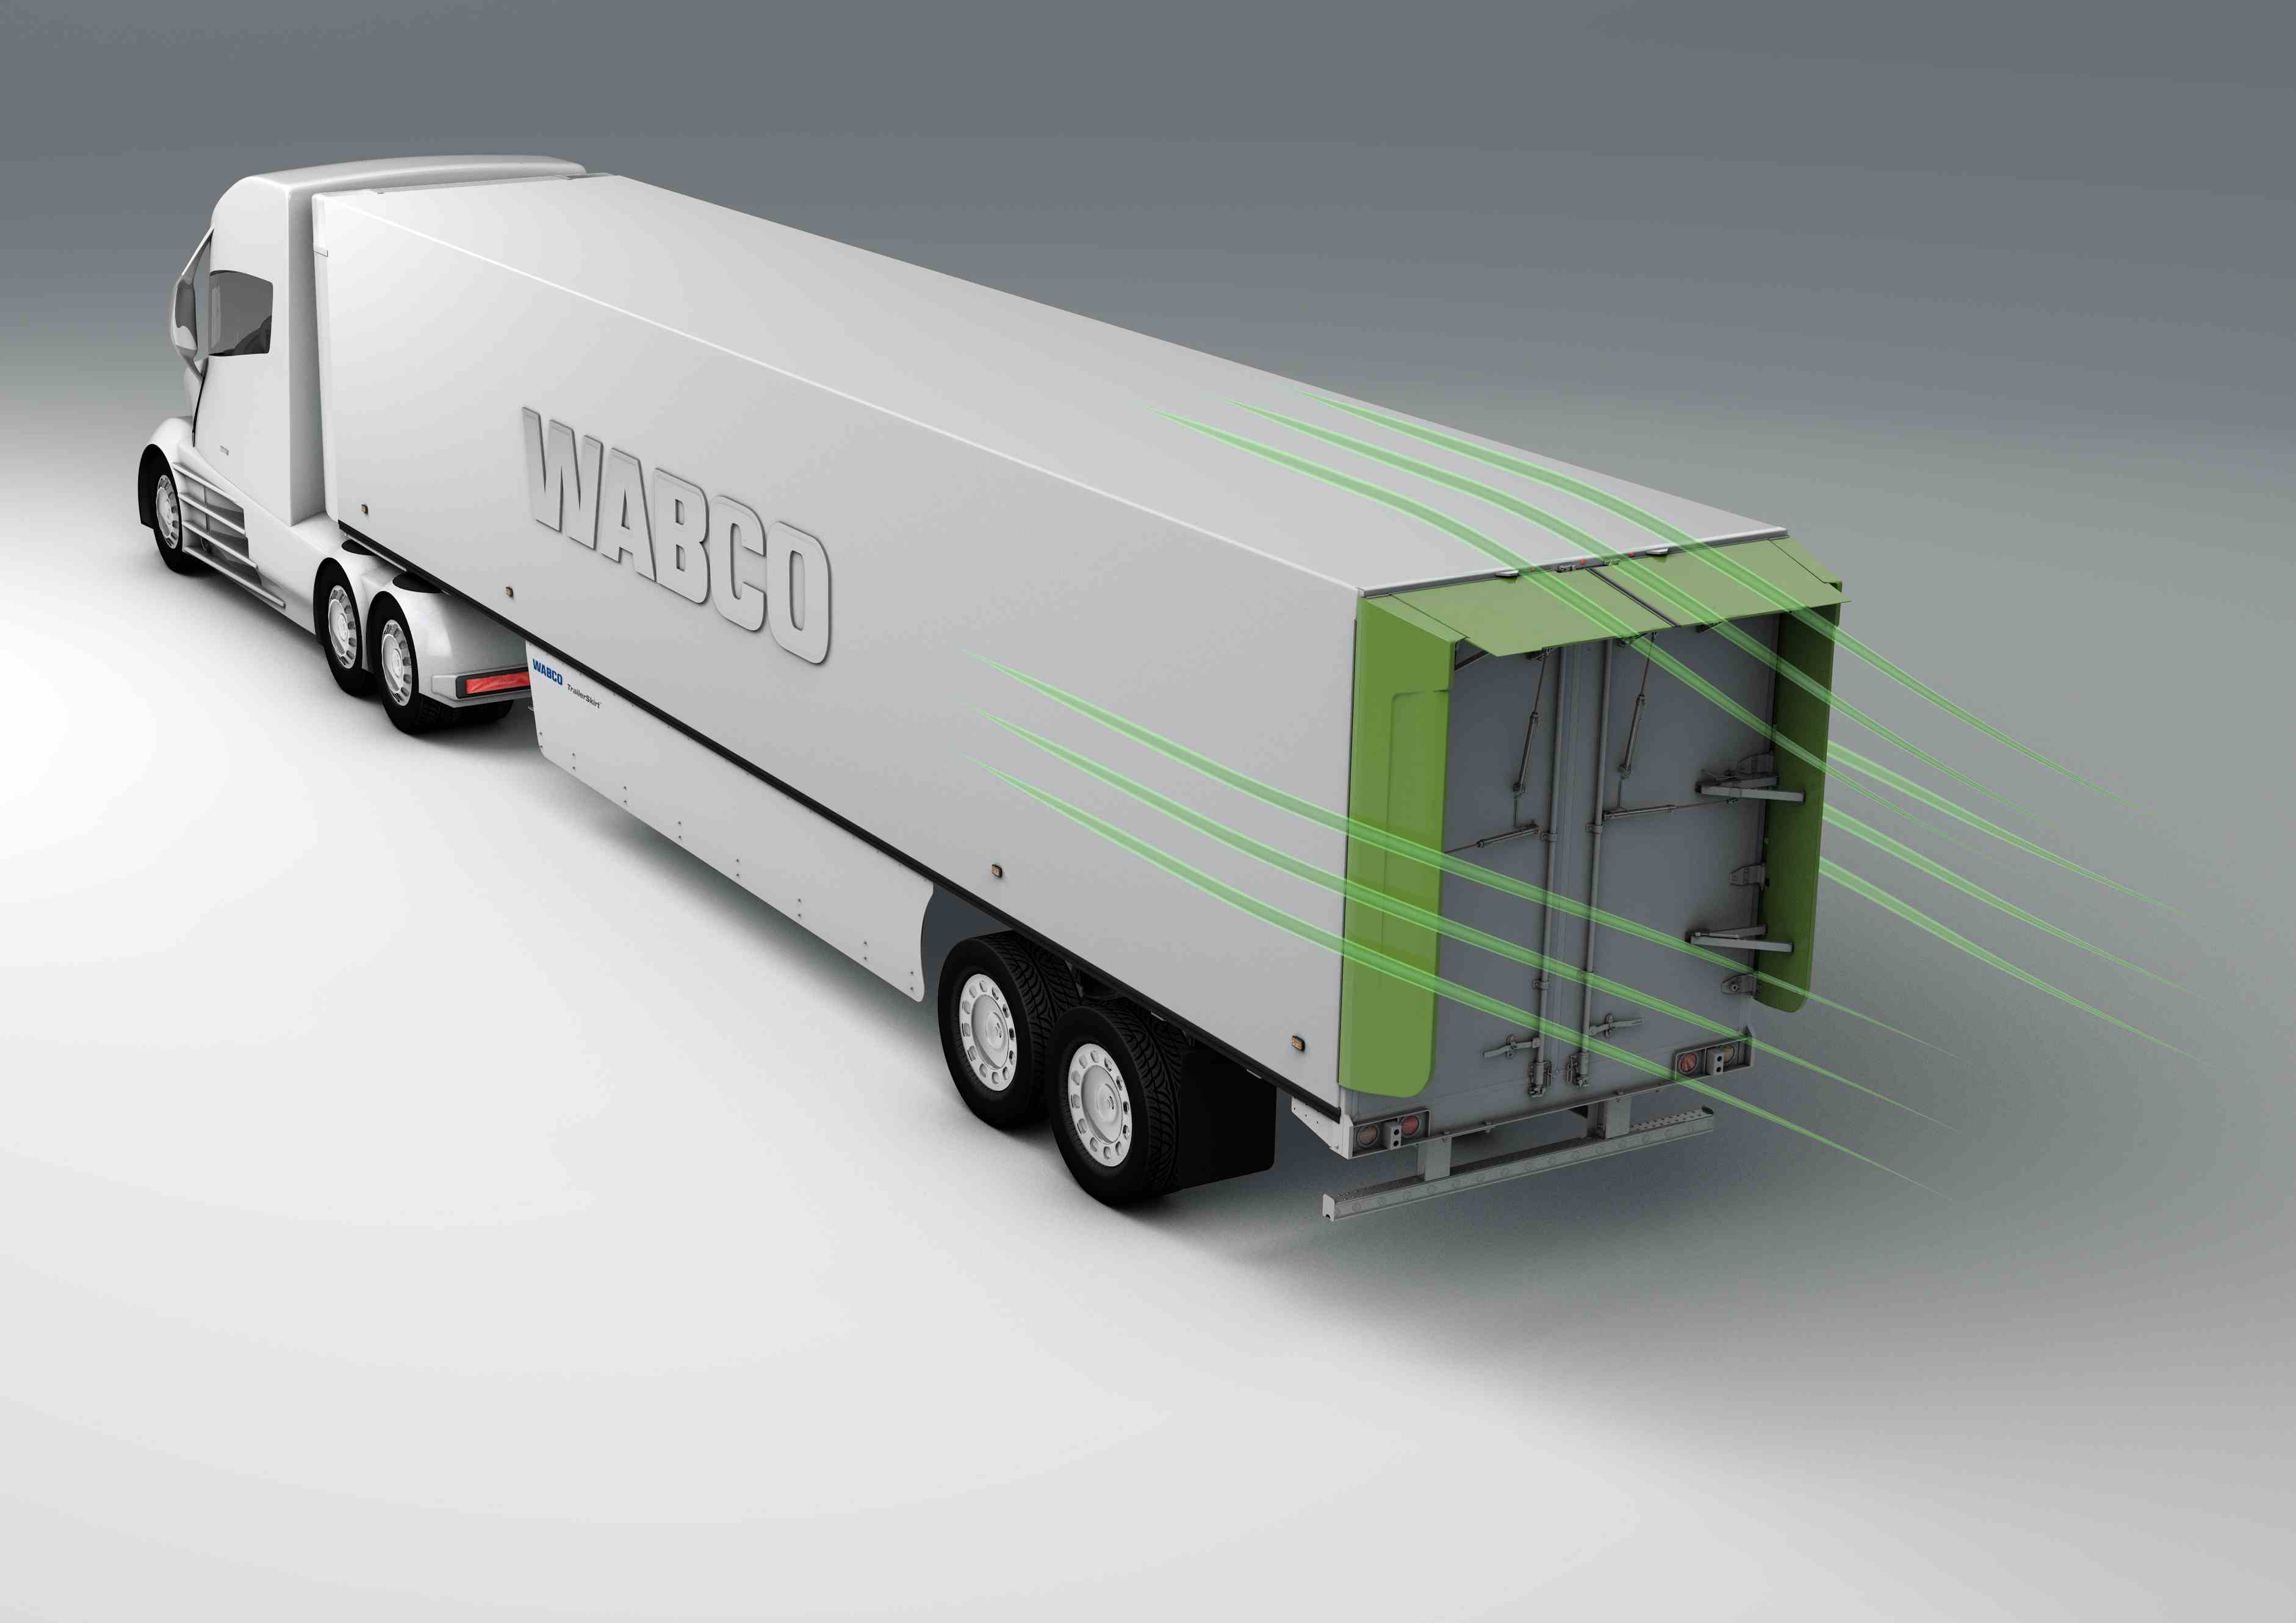 Vehicle Control Systems - Global, wabco